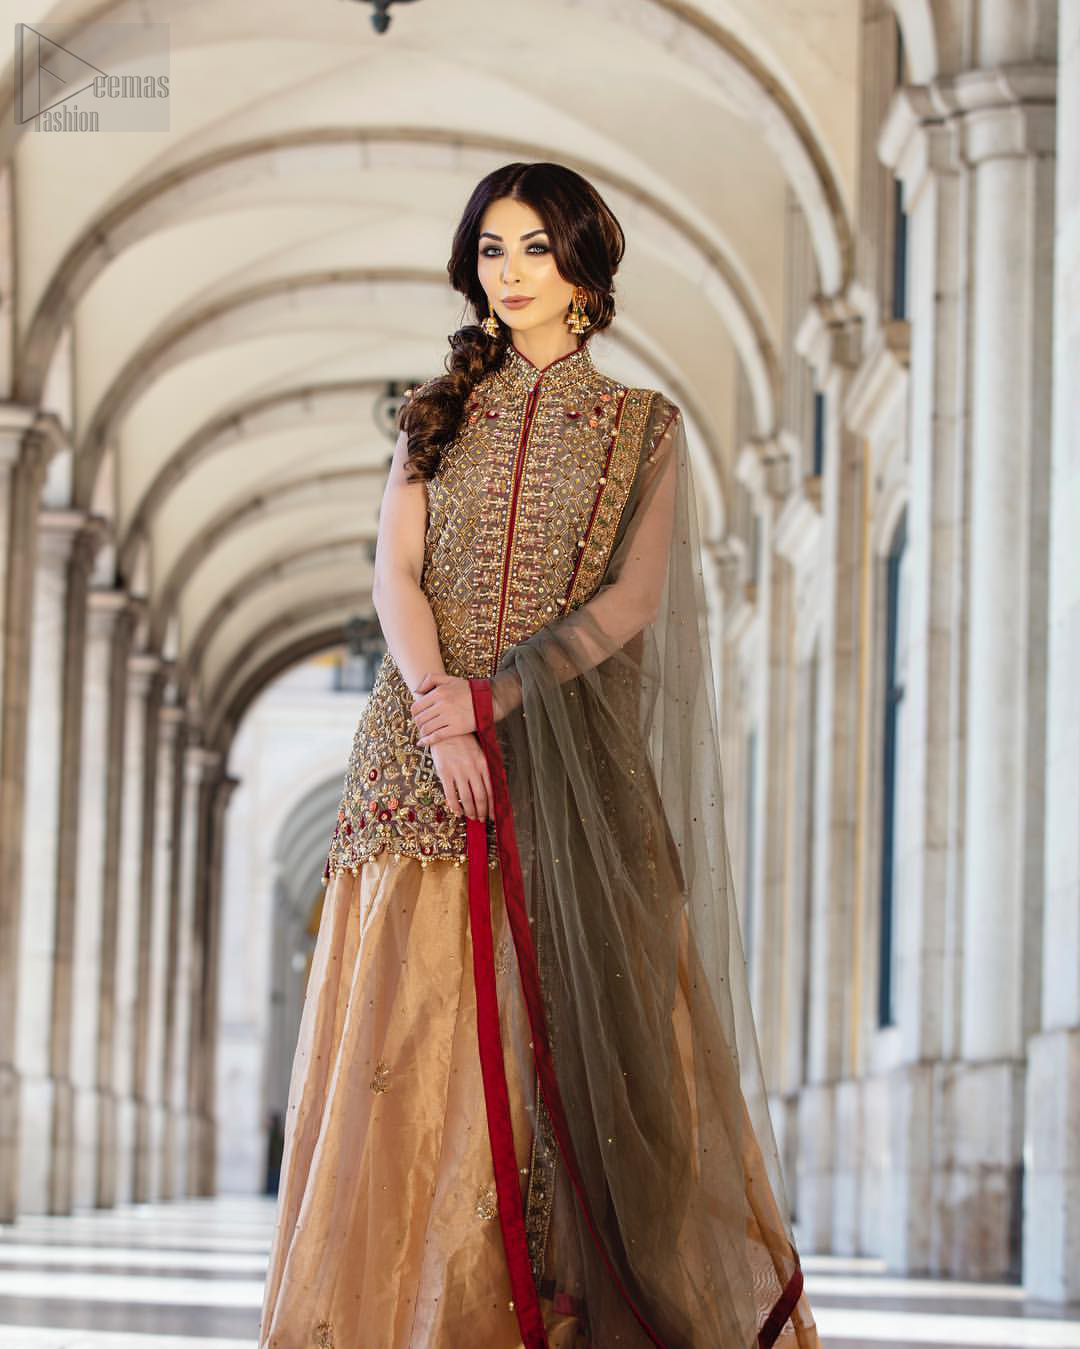 Our selection of wedding dresses offers simple evening glamour dresses. Add a taupe gray color to your wardrobe with our modern styled front open shirt enhanced with embellished geometric patterns. The neckline is beautifully designed with collar neck and scalloped hemline is emphasized with dangling pearls and multiple color embroidery. It is paired with taupe gray dupatta with one sided hand embellished border and sprinkled sequins all over. Compliment the look with fawn lehenga adorned with floral bunches. The combination of fawn and taupe gray is absolutely breathetaking.